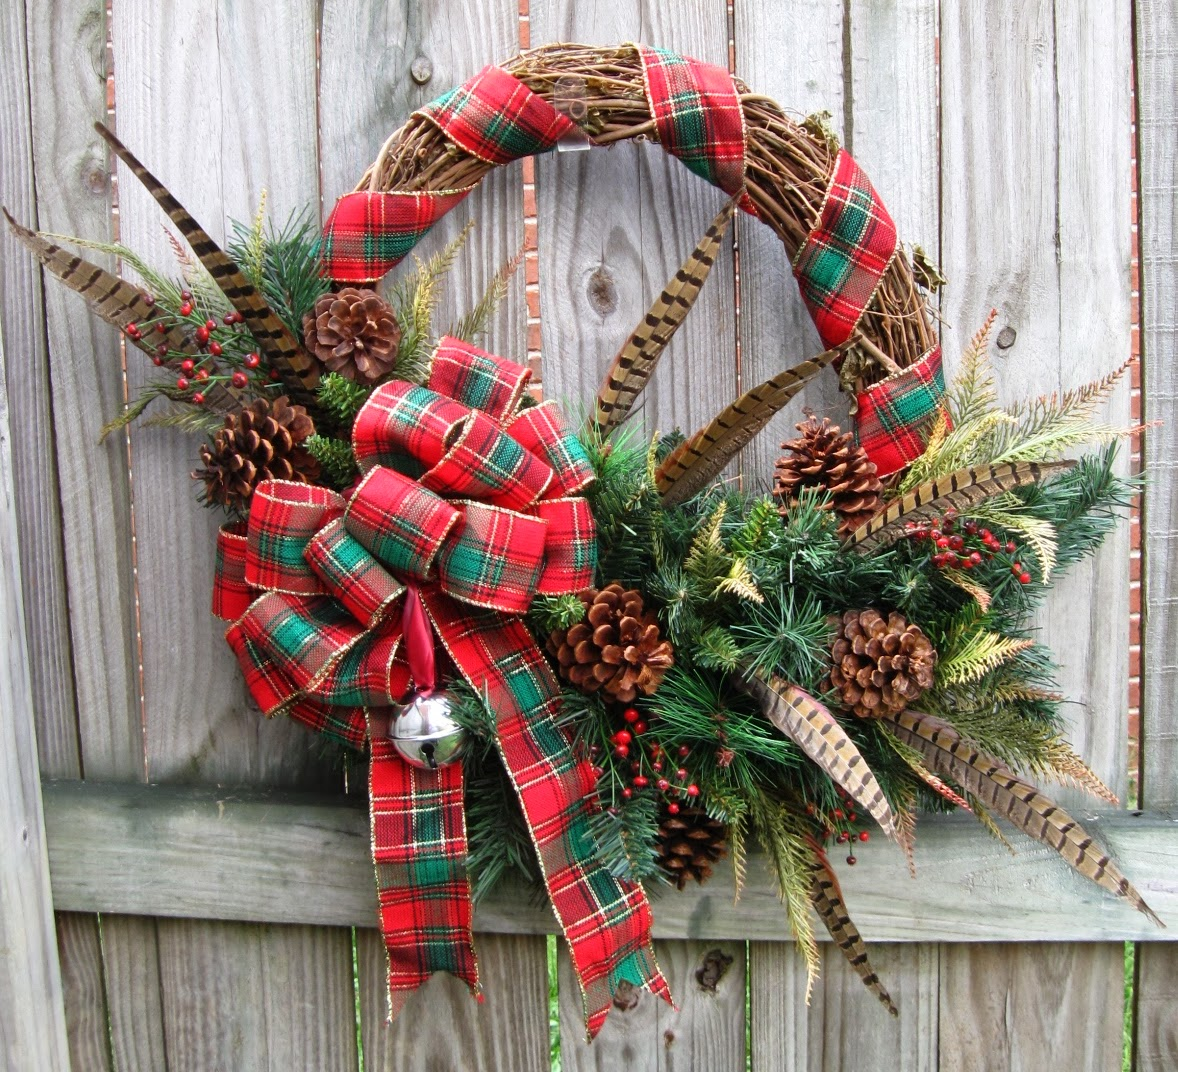 Irish Girl S Wreaths Where The Difference Is In The